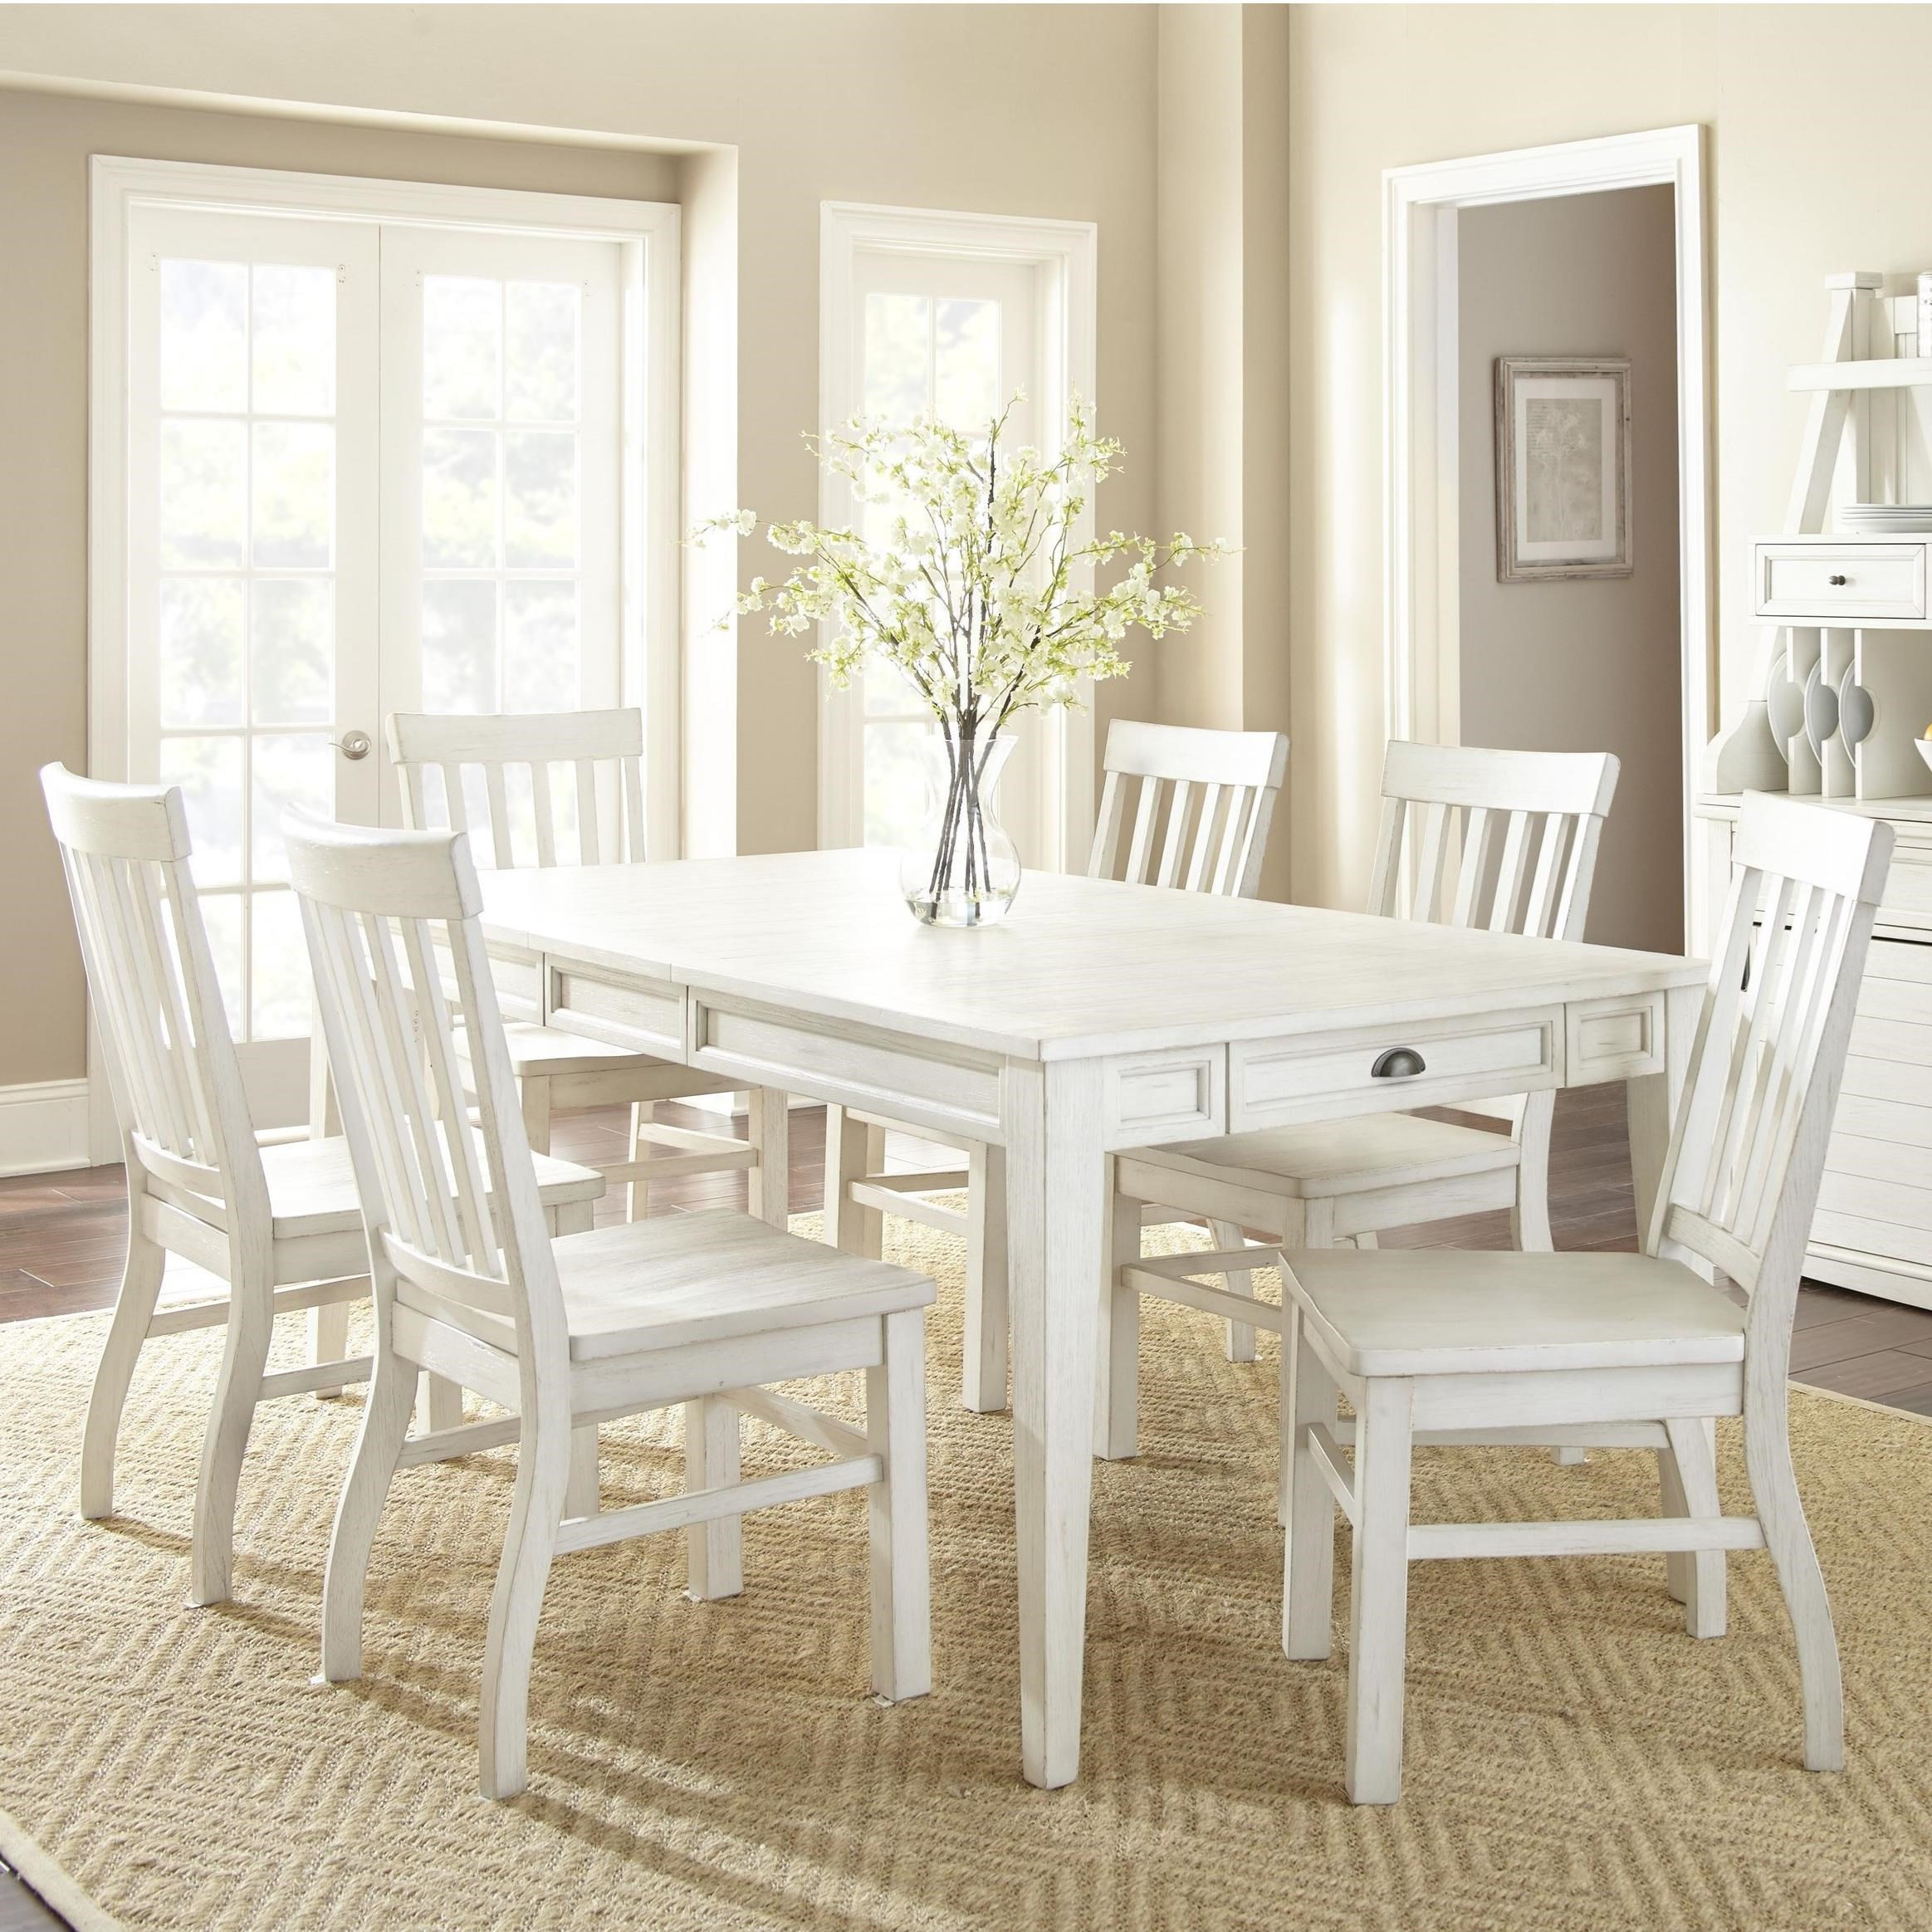 Steve Silver Cayla 7 Piece Dining Set   Item Number: CY400TW+6xSW